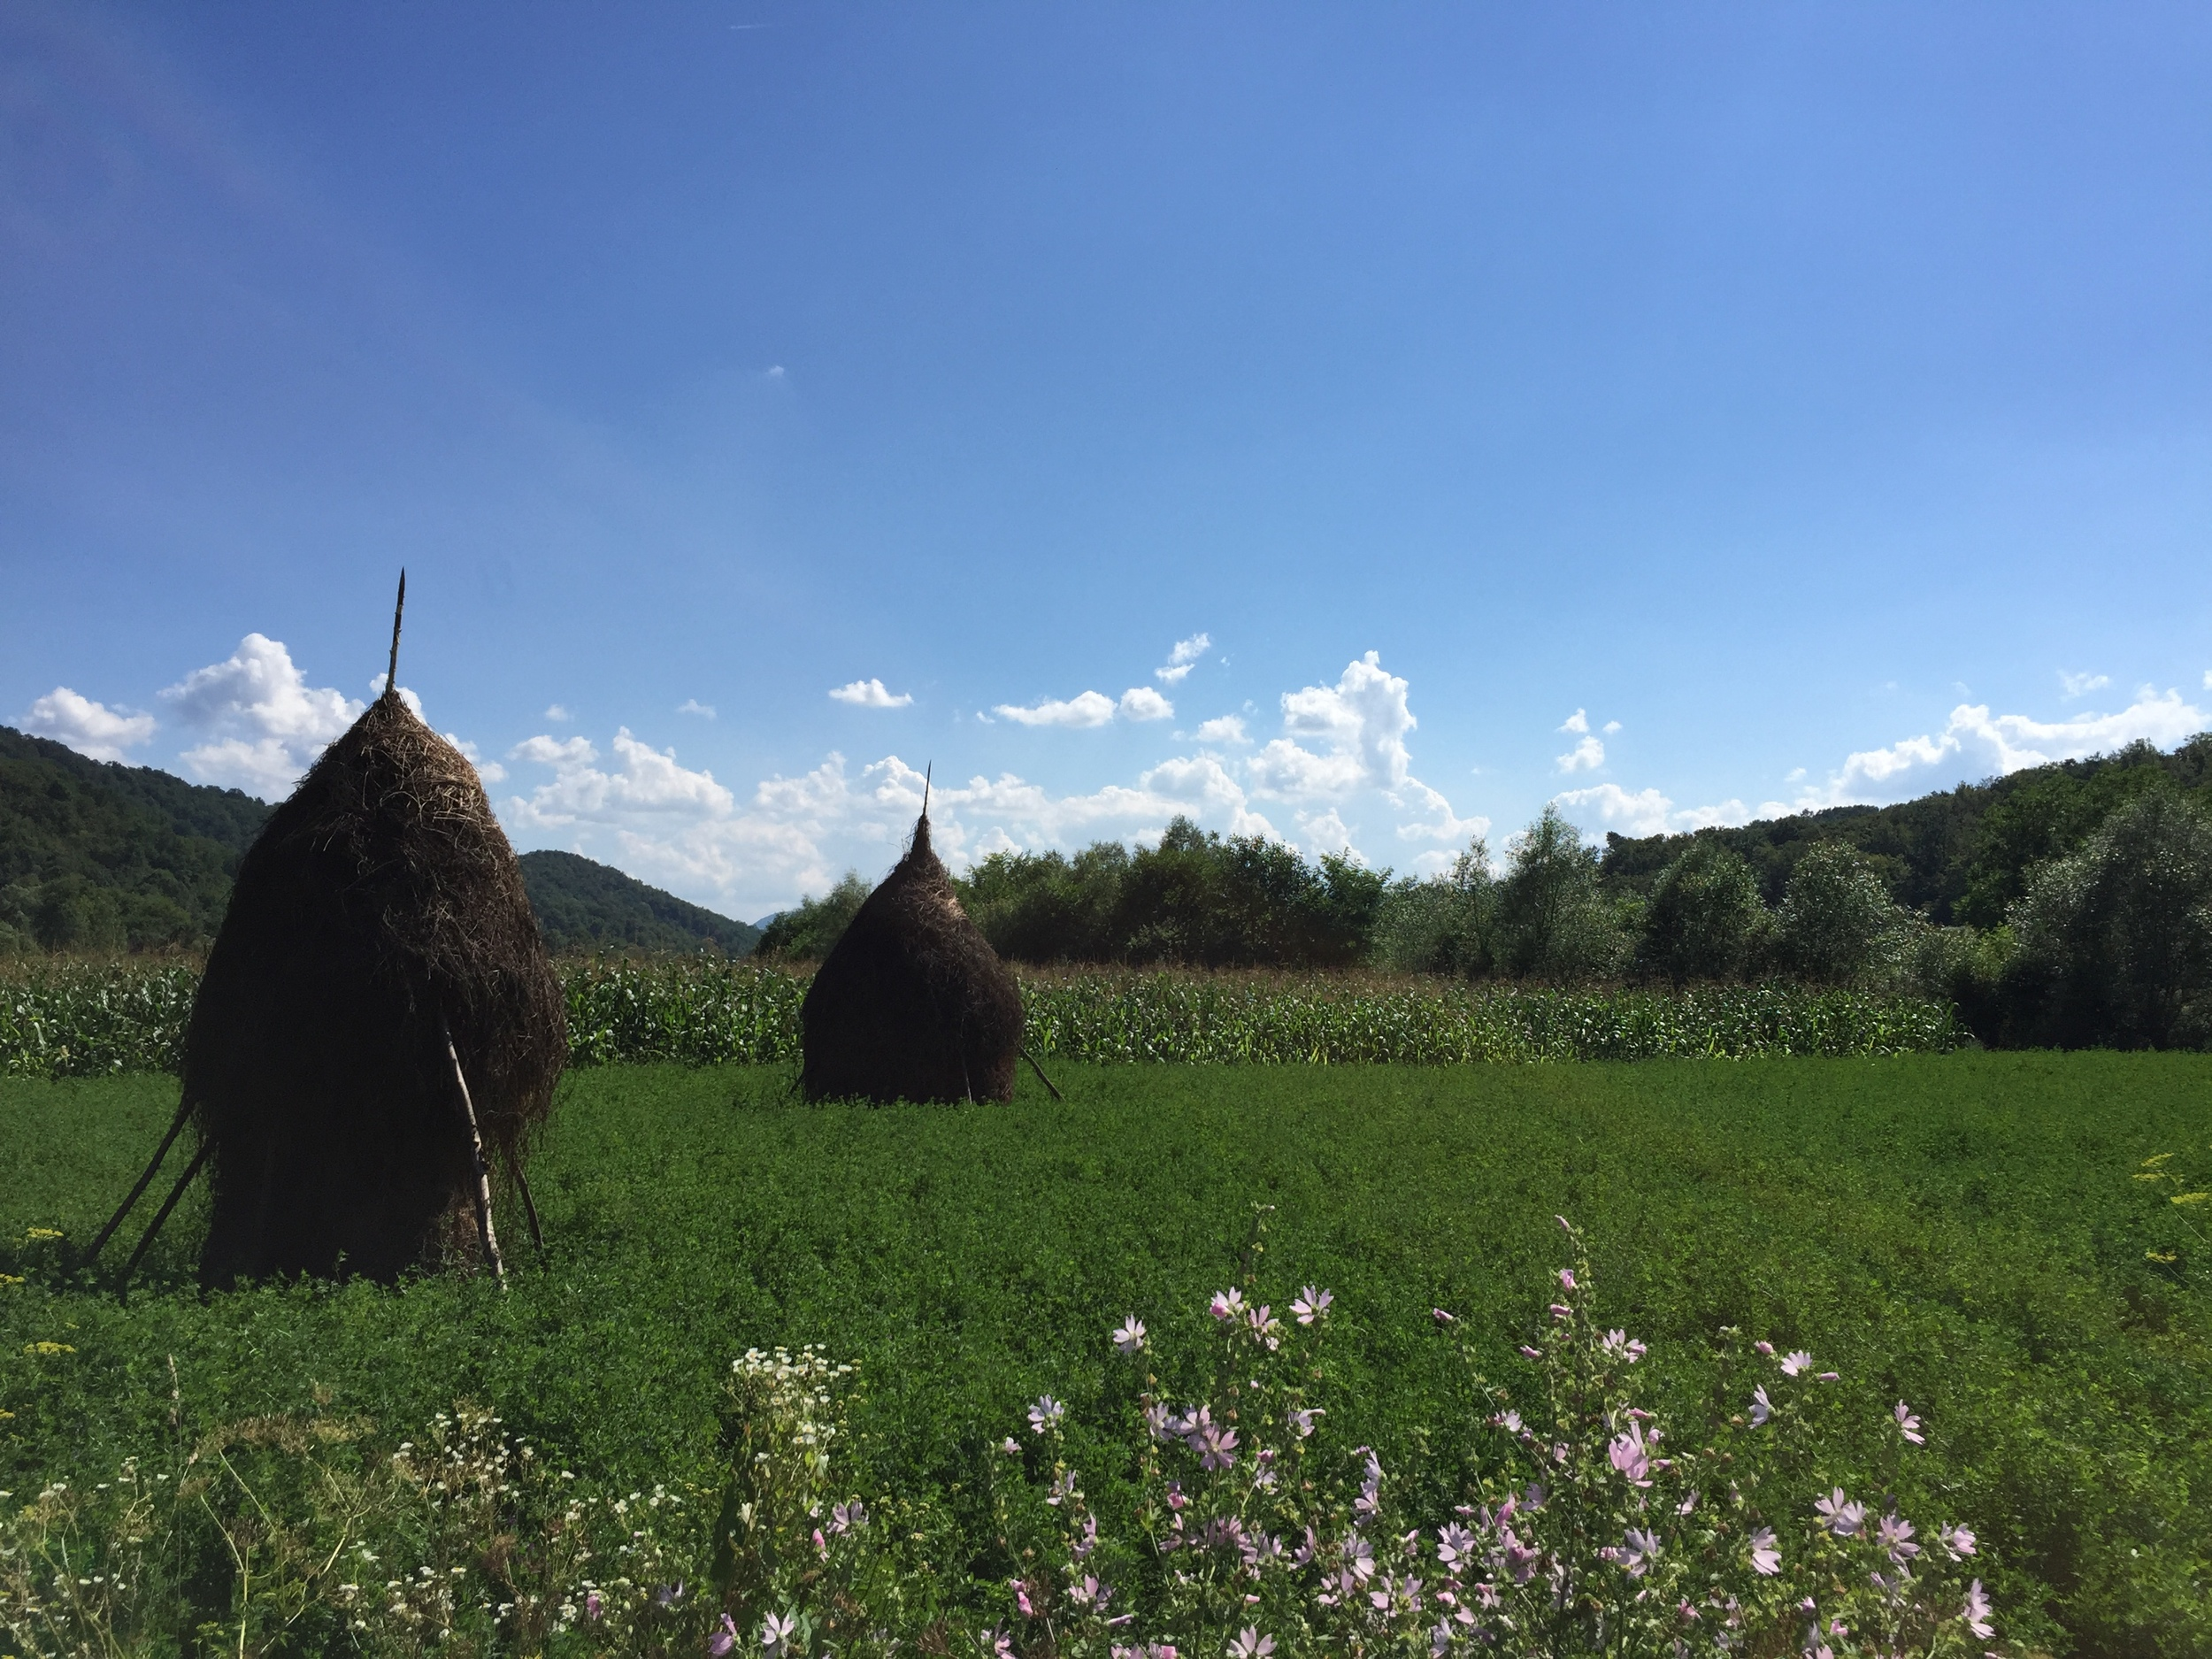 These hay stacks are very Romanian.